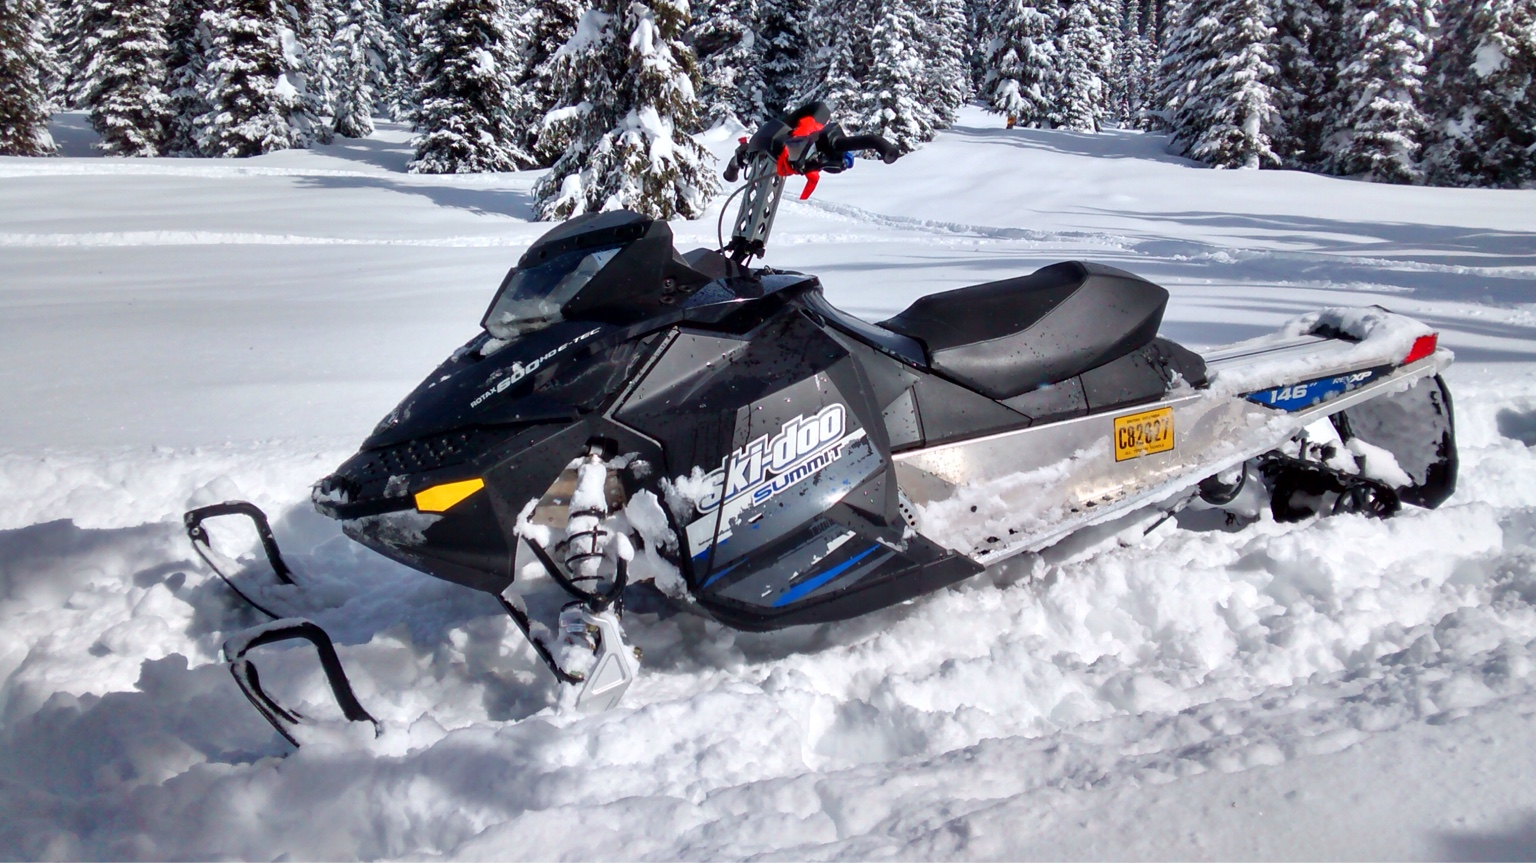 Maggot snowmobile thread [Archive] - Page 9 - Teton Gravity Research Forums